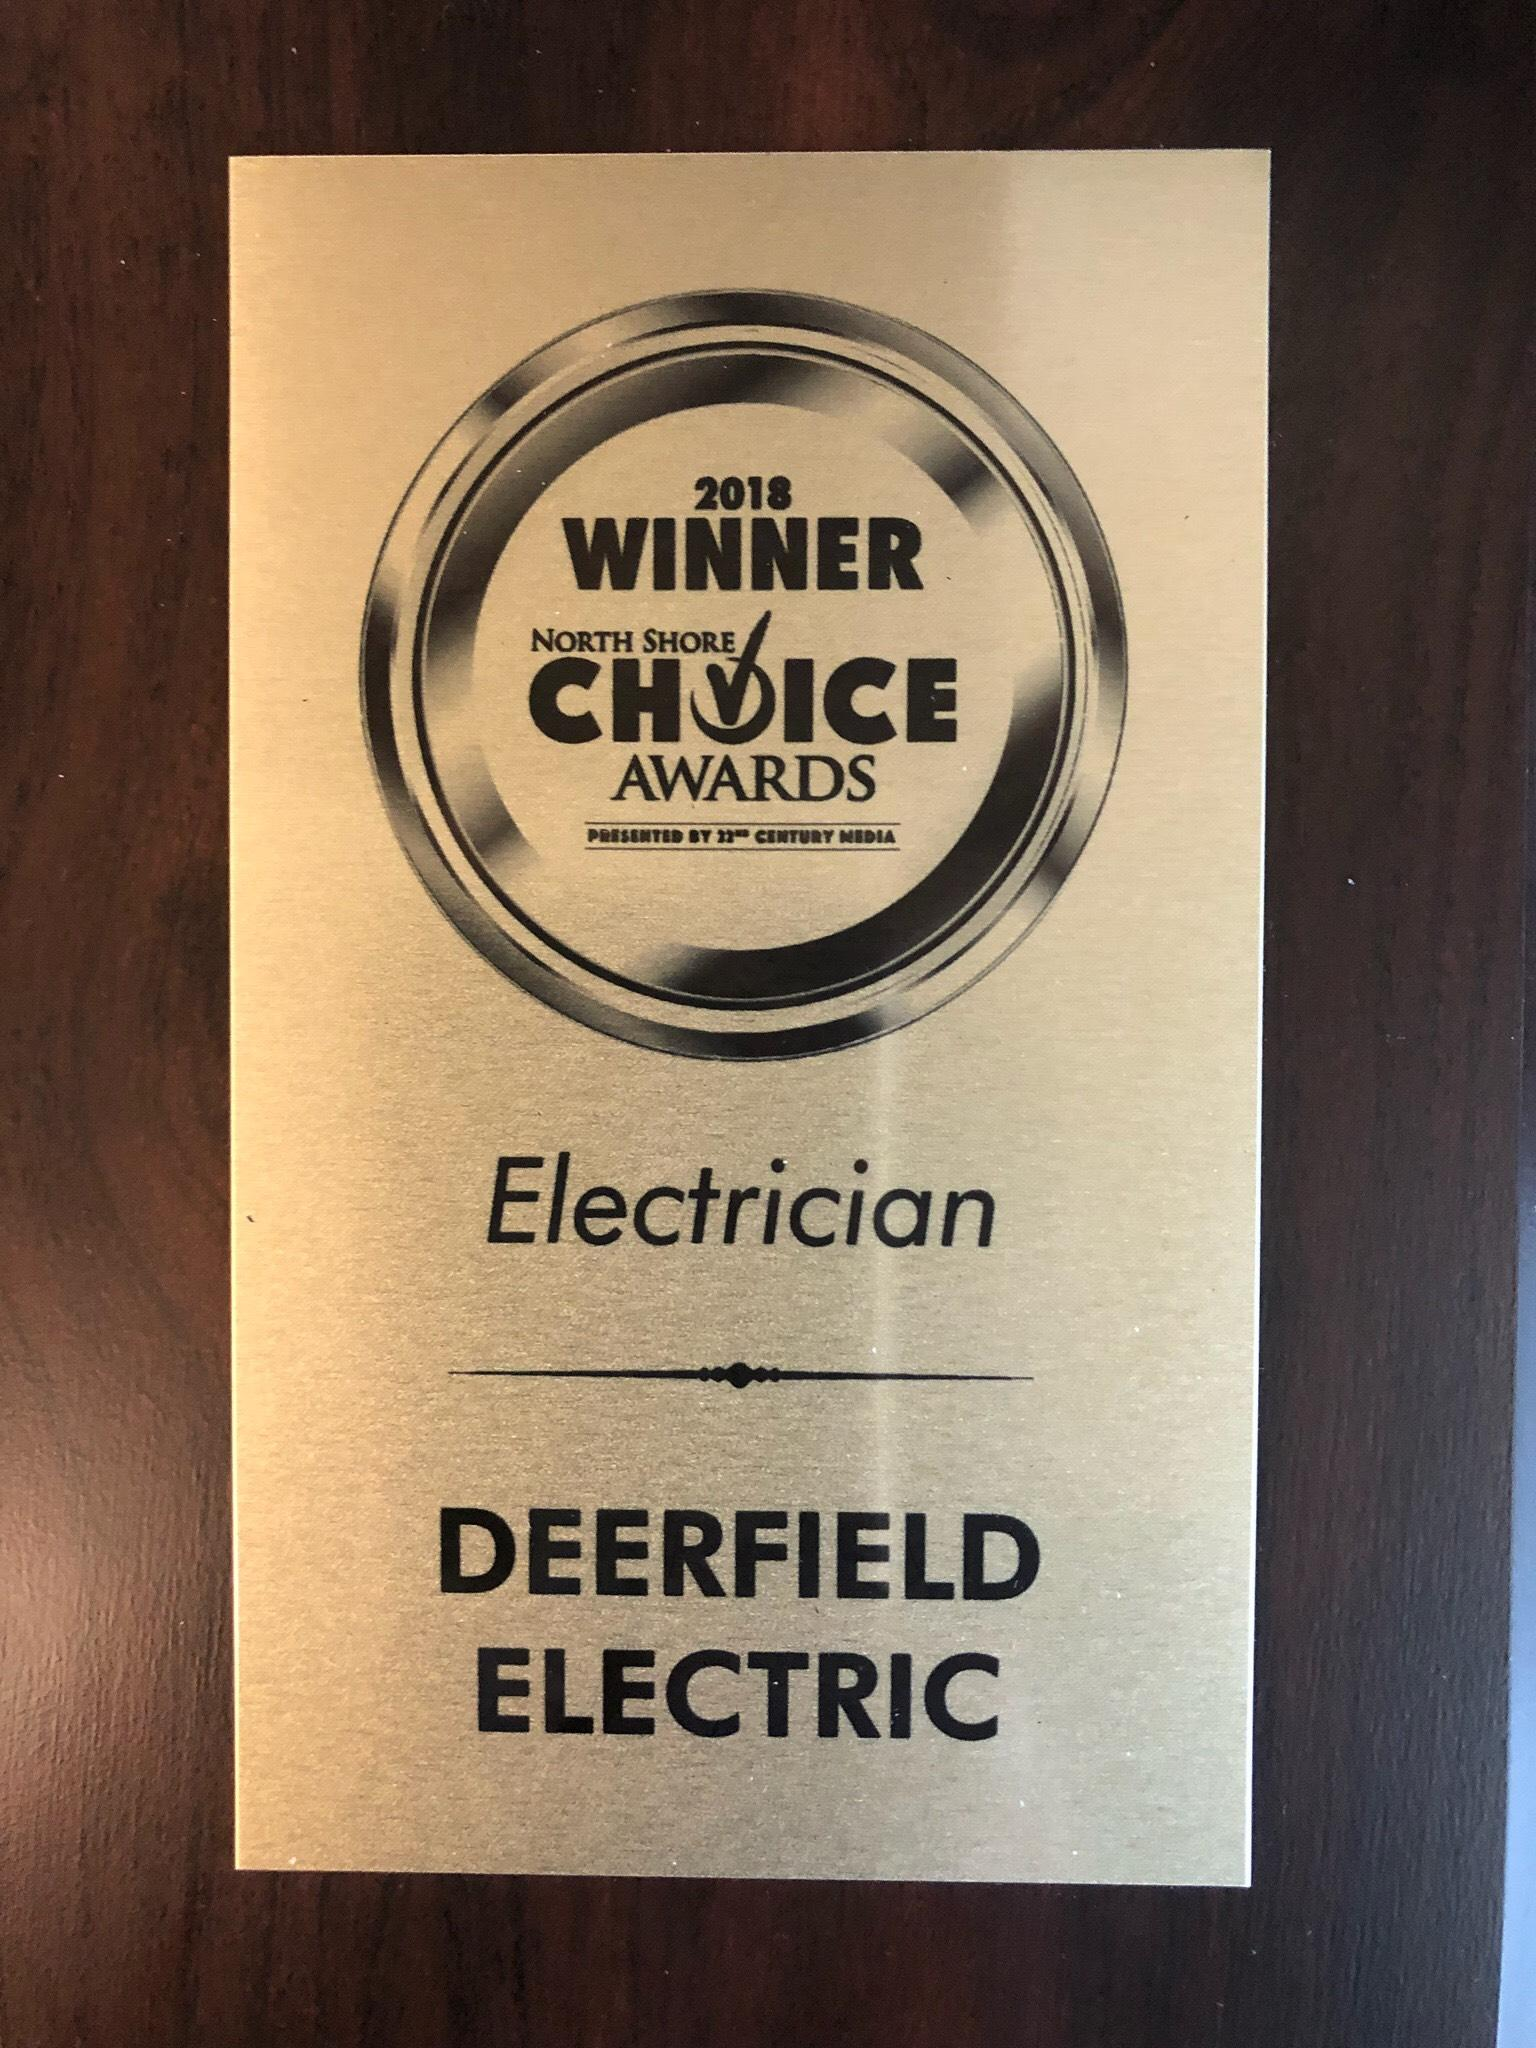 DEERFIELD ELECTRIC PANY INC in Northbrook IL